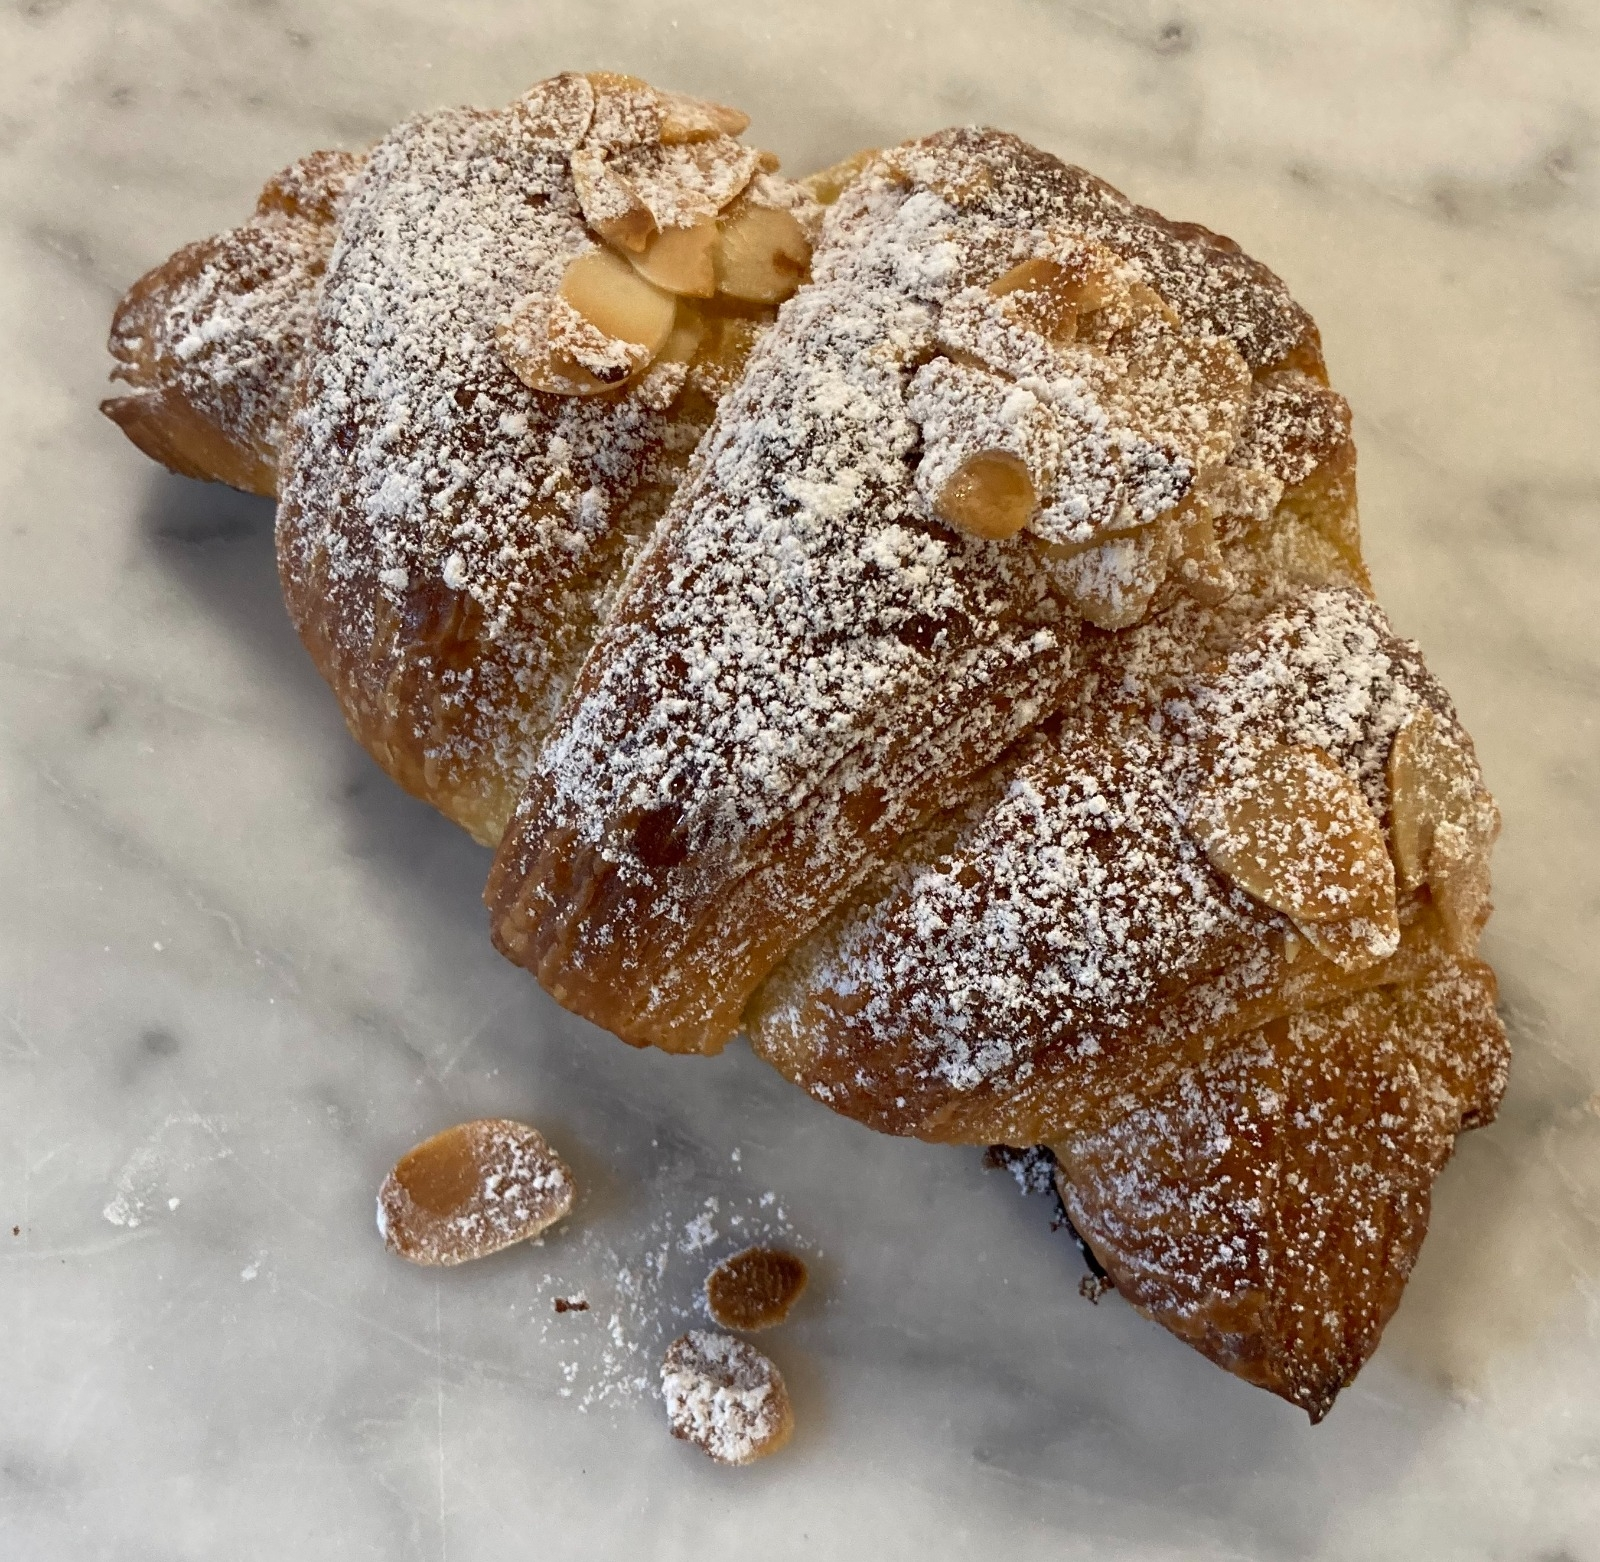 Almond Croissant from small-batch bakery Charlton Bakehouse